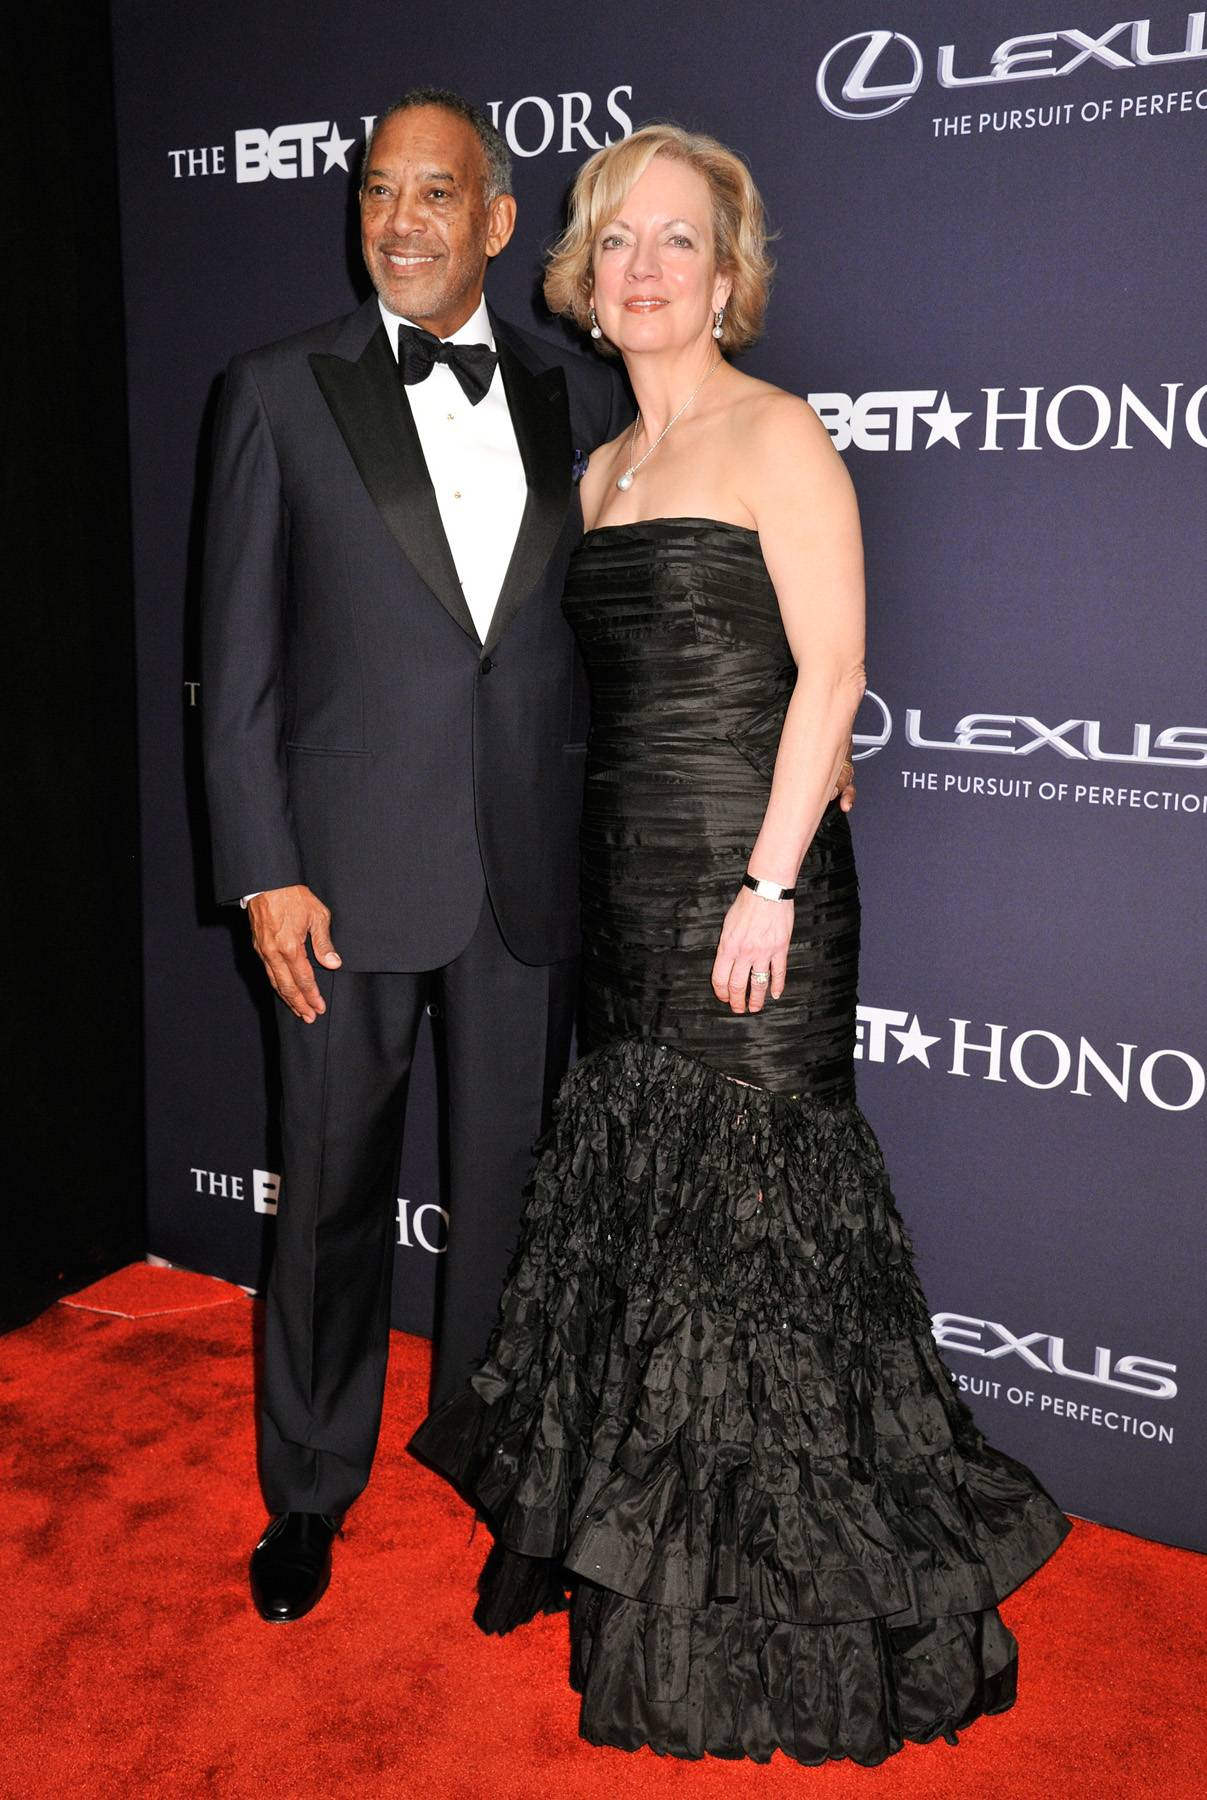 Tech-nically Killin' the Carpet  - The BET Honors Technology and Business HonoreeJohn W. Thompson and gorgeous wife, Sandi Thompson, make a striking appearance on the red carpet. (Photo: Kris Connor/BET/Getty Images for BET)